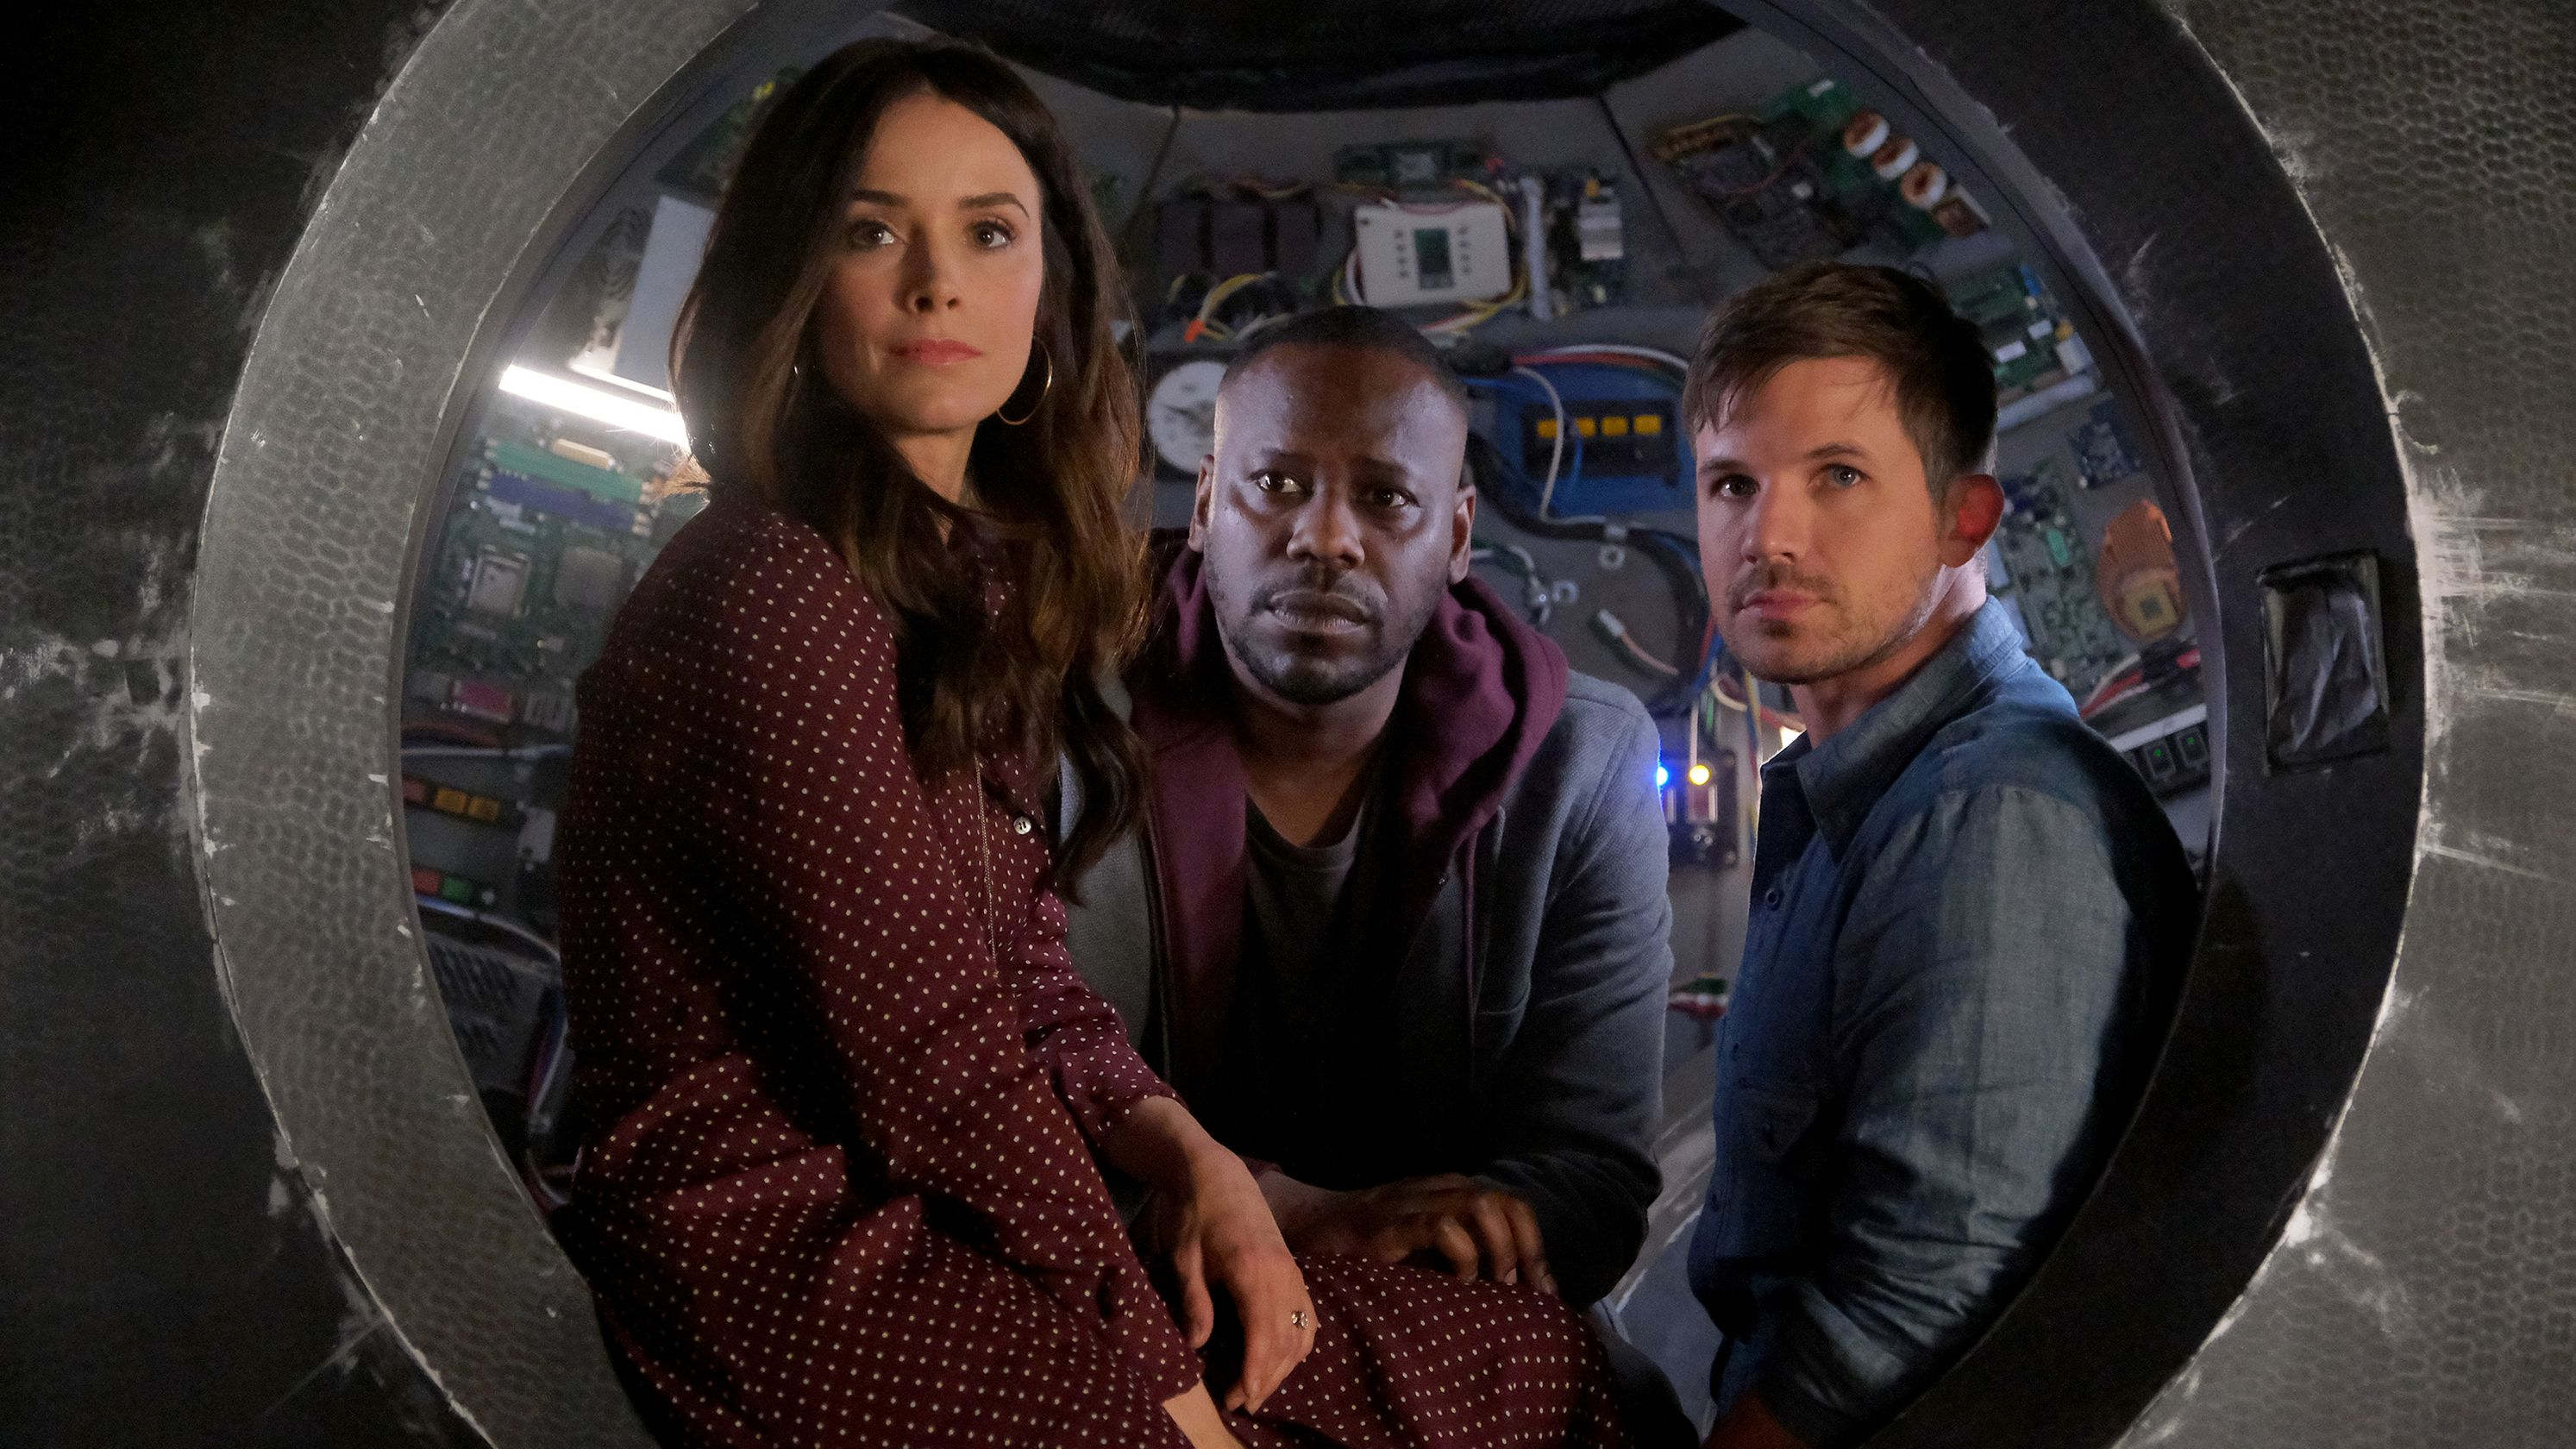 'Timeless' finale recap: The Time Team wraps up a bumpy ride in solid fashion